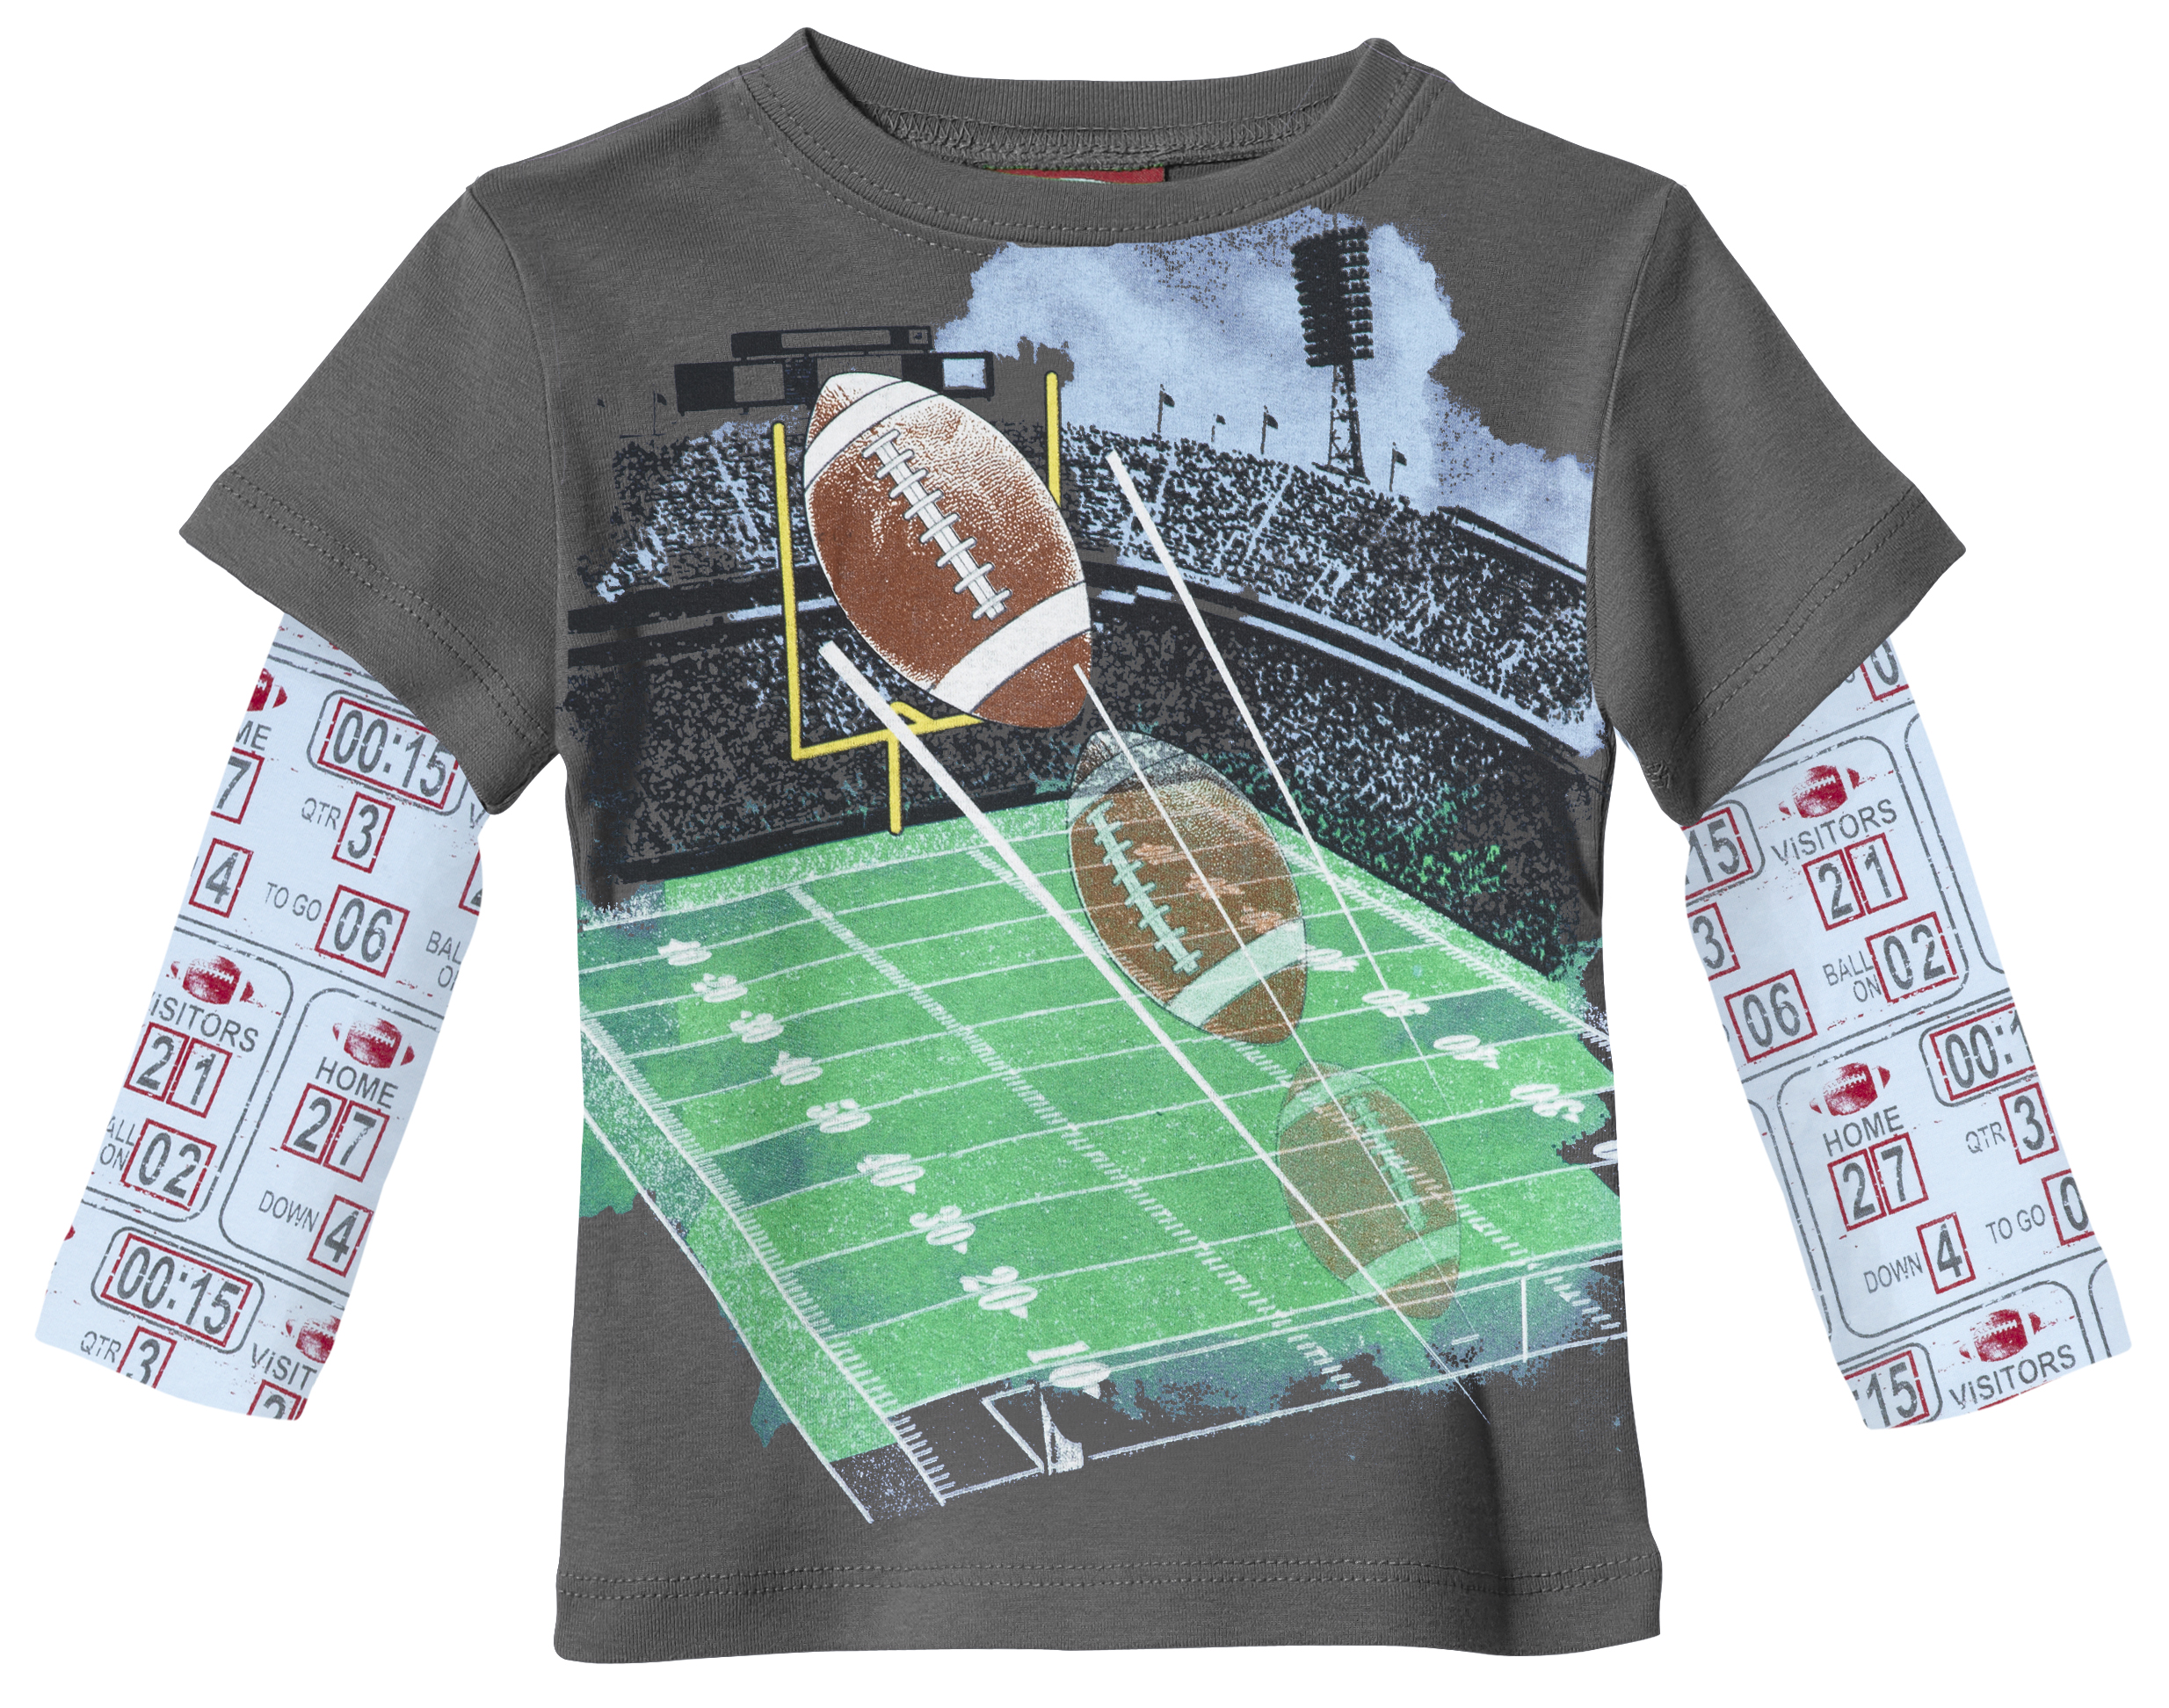 City Threads Football tee